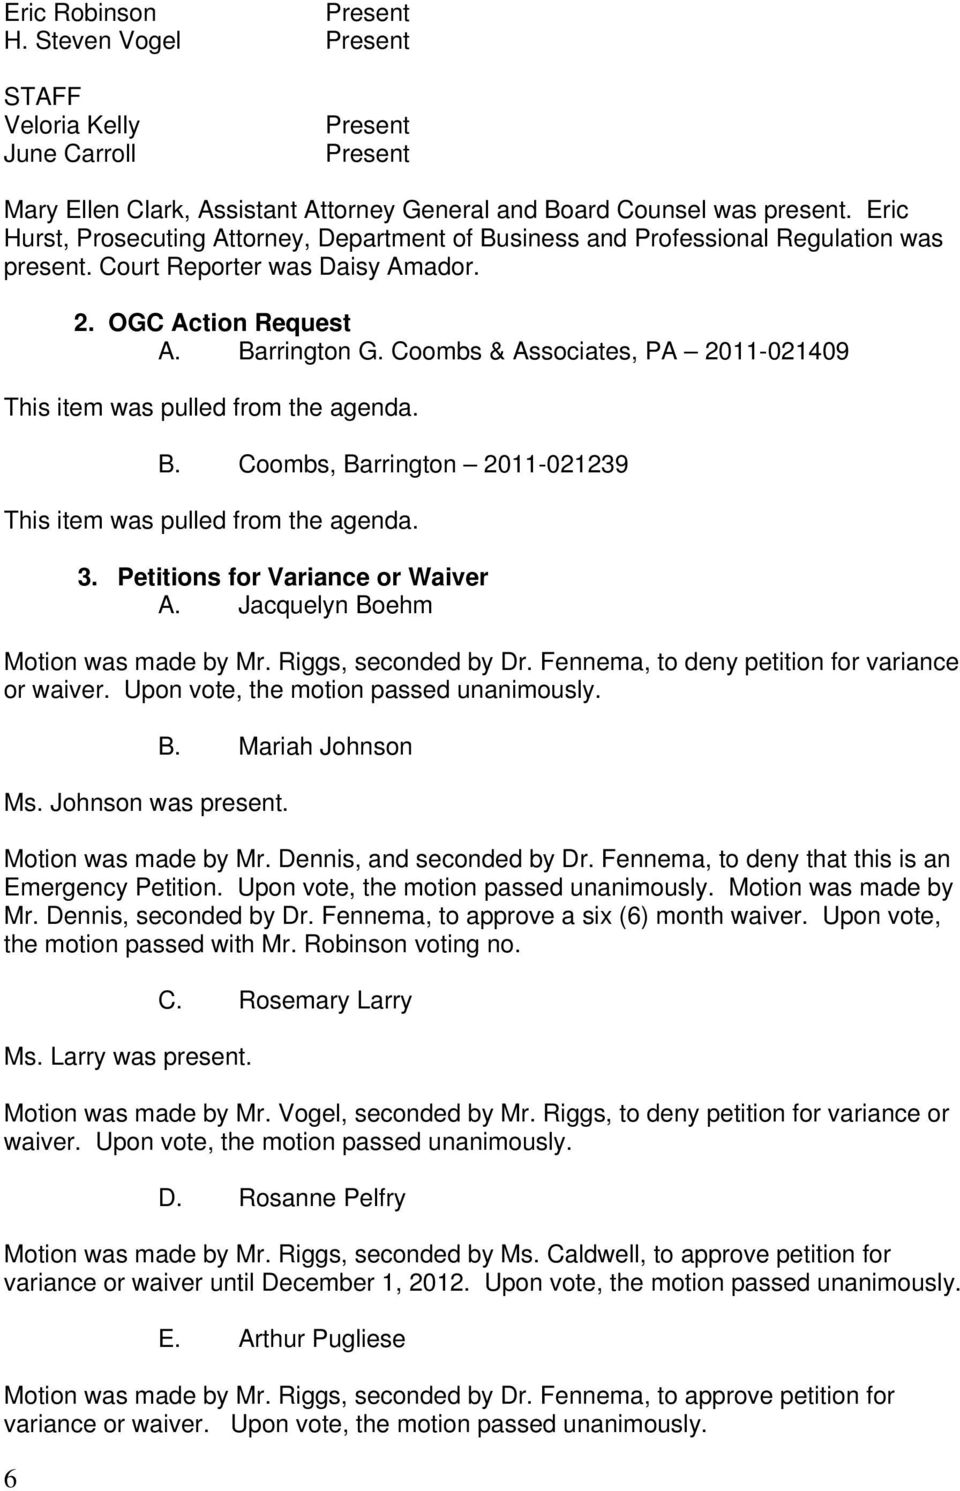 Coombs & Associates, PA 2011-021409 This item was pulled from the agenda. B. Coombs, Barrington 2011-021239 This item was pulled from the agenda. 3. Petitions for Variance or Waiver A.